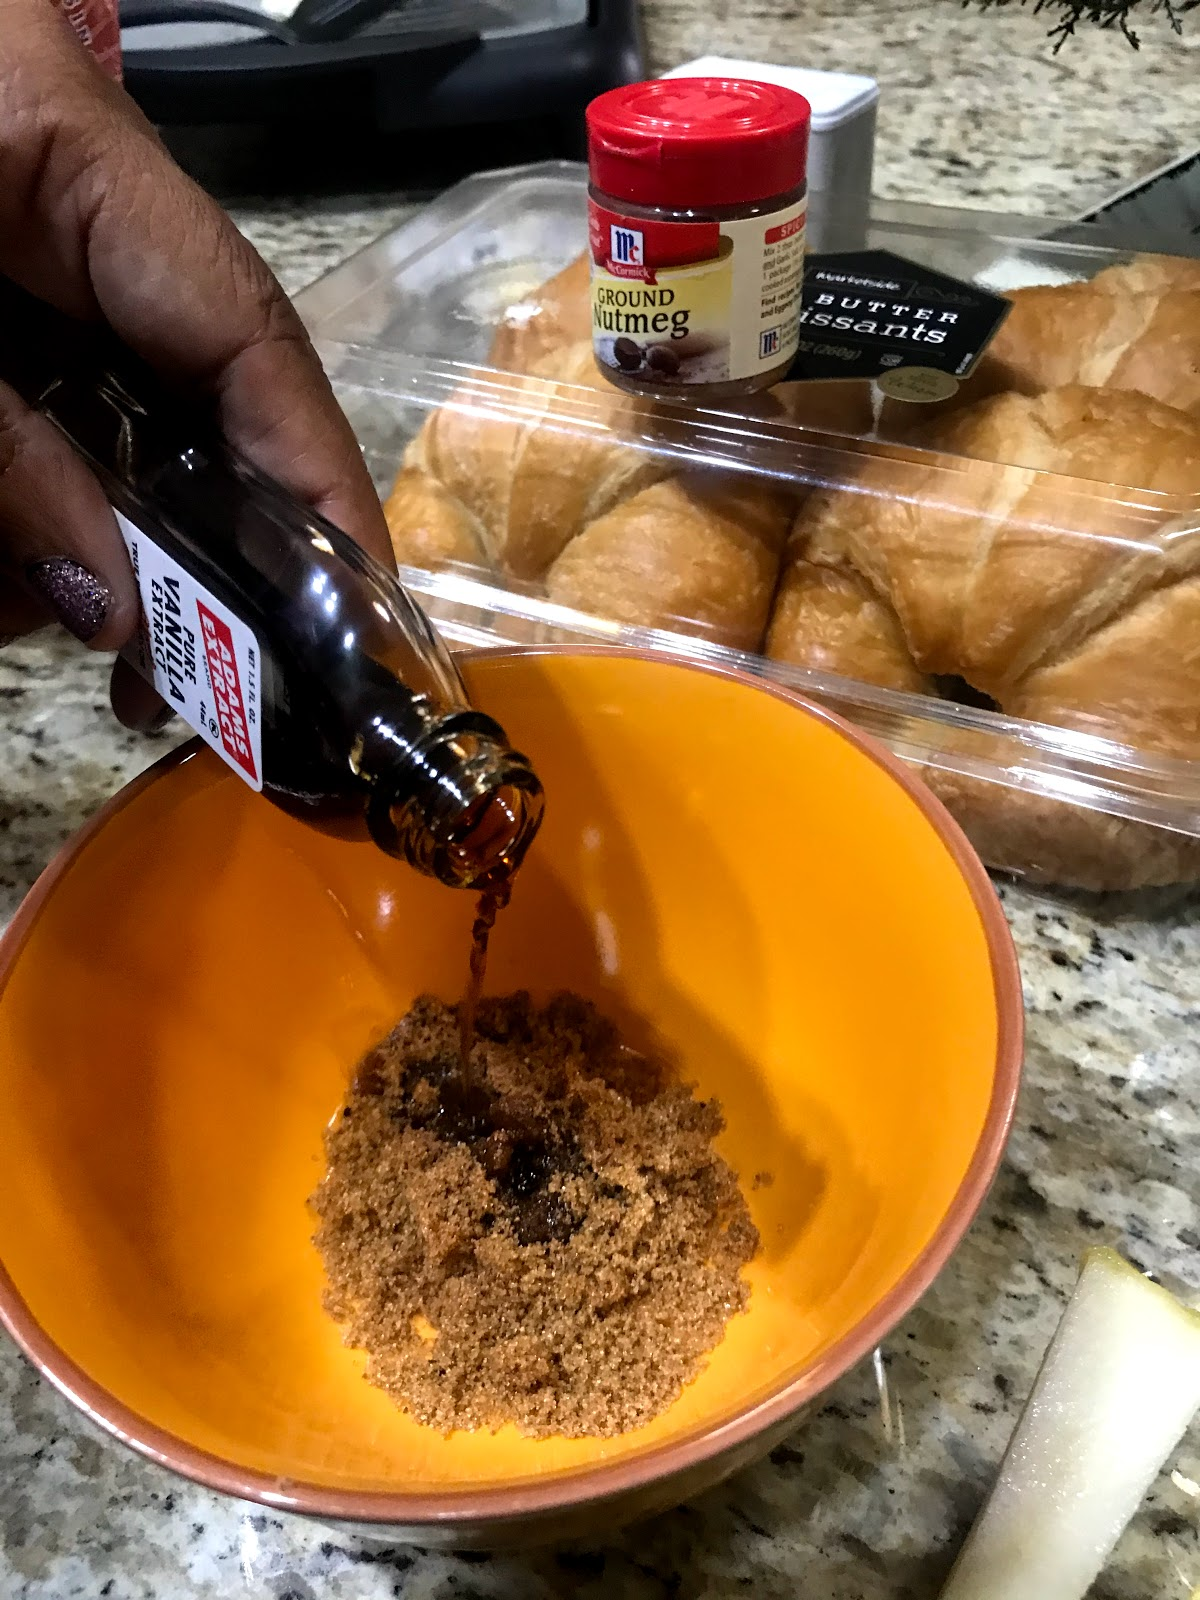 Tangie Bell is sharing how she uses, vanilla flavoring, cinnamon, and sugar to make the sauce for her sammich